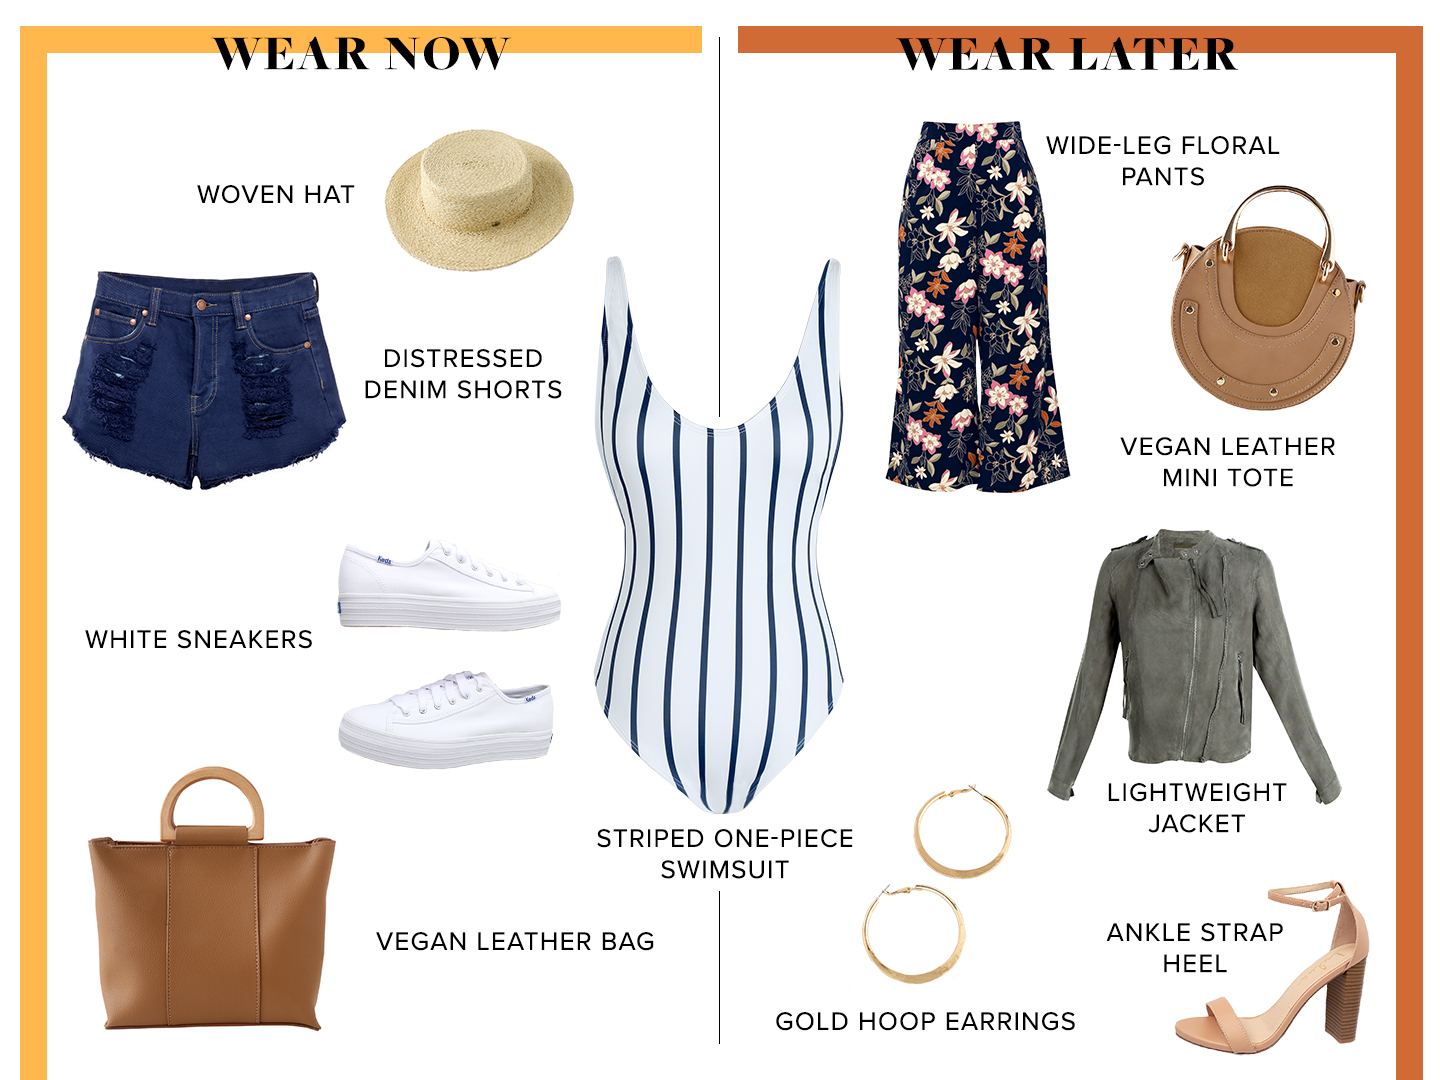 wear now and wear later - how to wear your one-piece swimsuit as a top